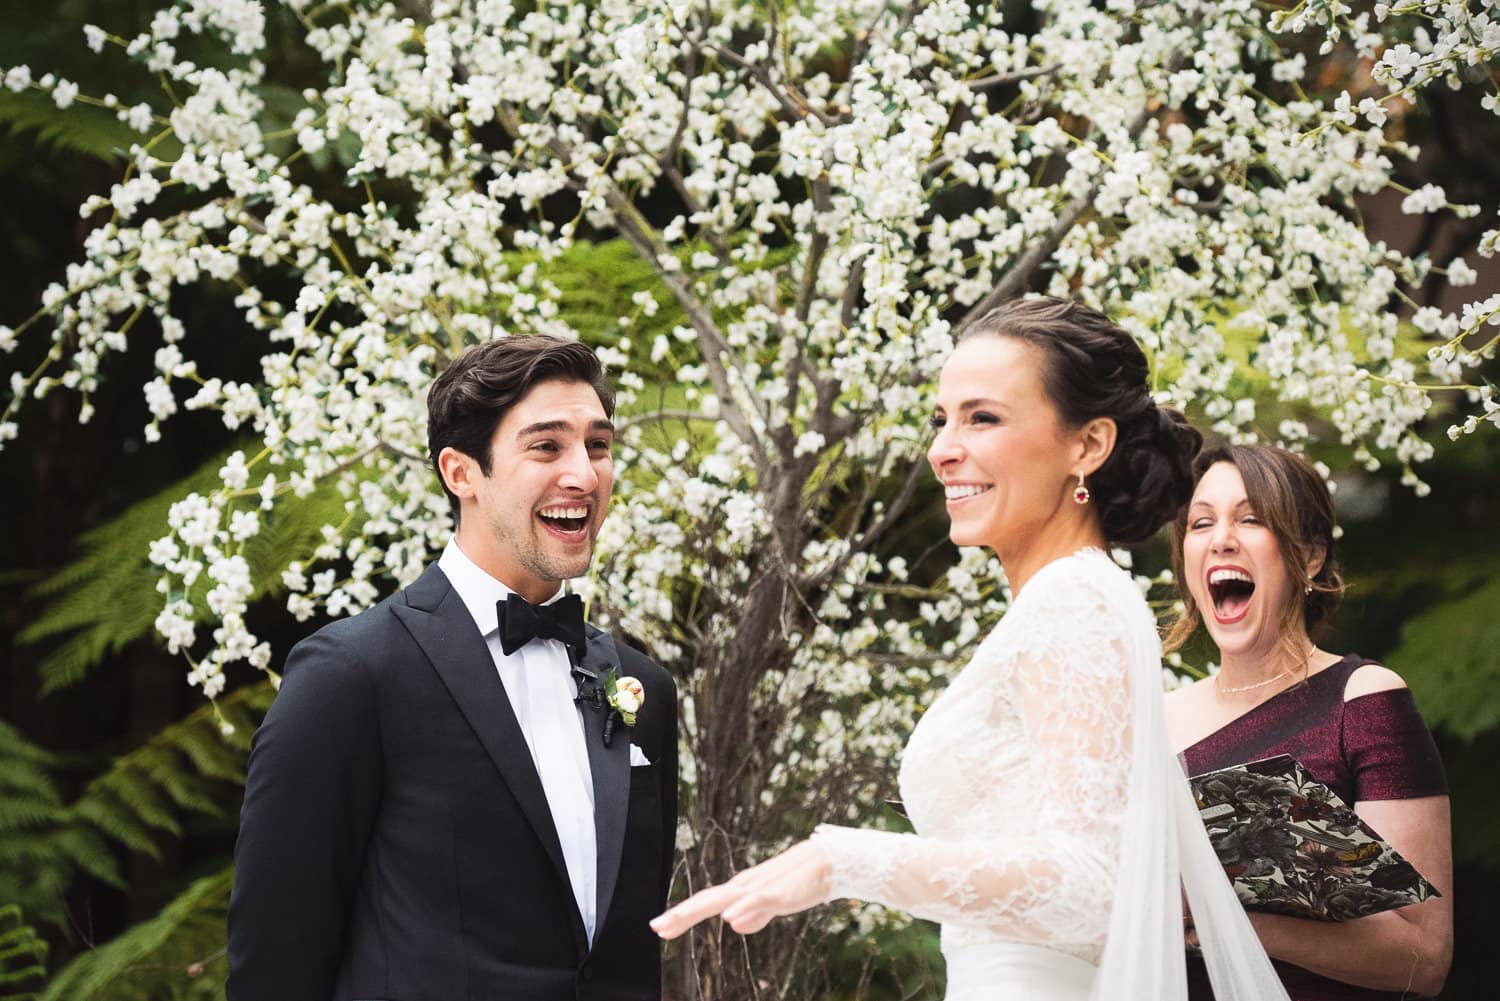 Funny Bride and Groom moment during Hotel Bel-Air wedding